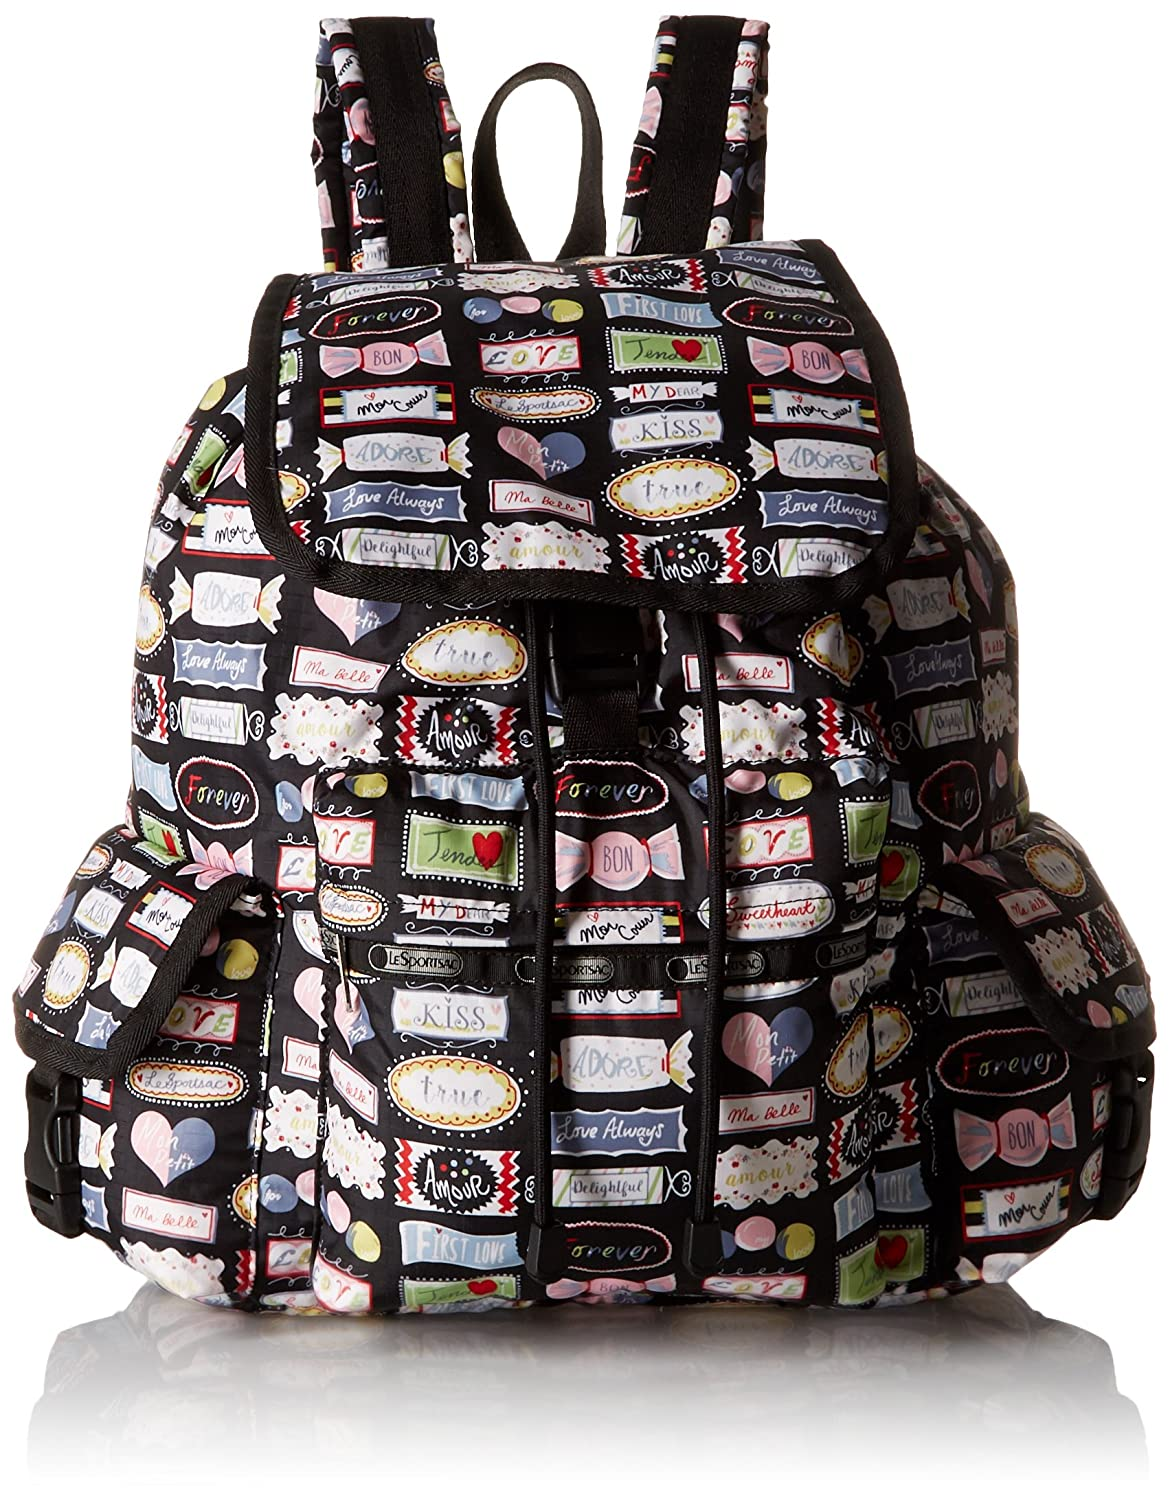 [レスポートサック] リュック(VOYAGER BACKPACK ) VOYAGER BACKPACK、軽量 7839 [並行輸入品] B018JW1BZI Sweet Talk Sweet Talk